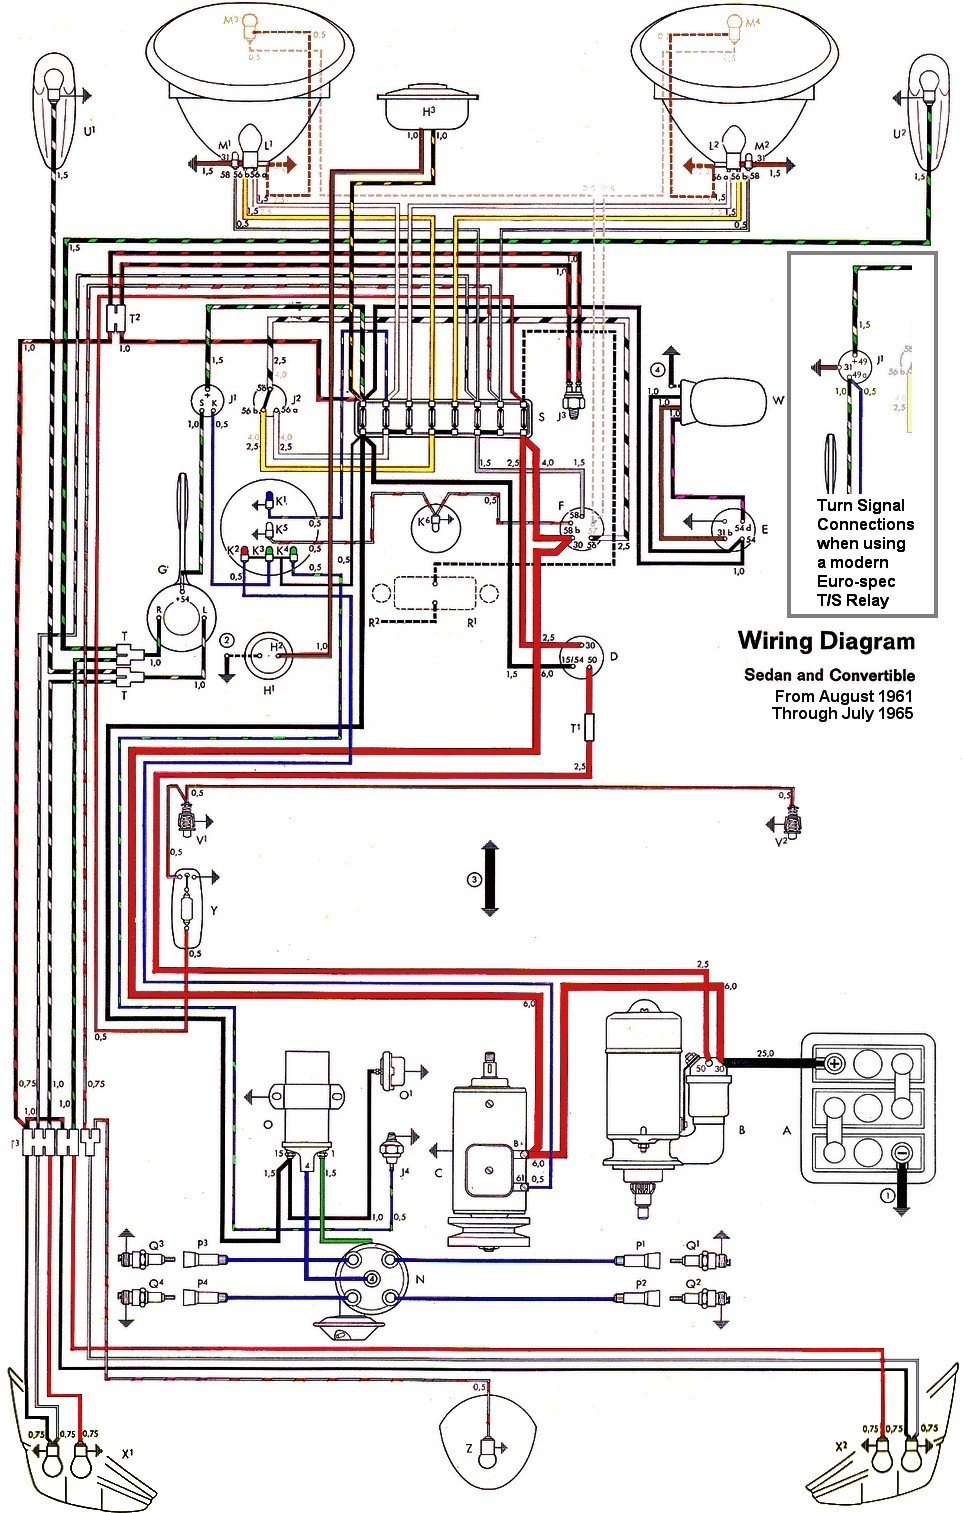 Type 1 Wiring Diagrams Stewart Warner Gauge Diagram